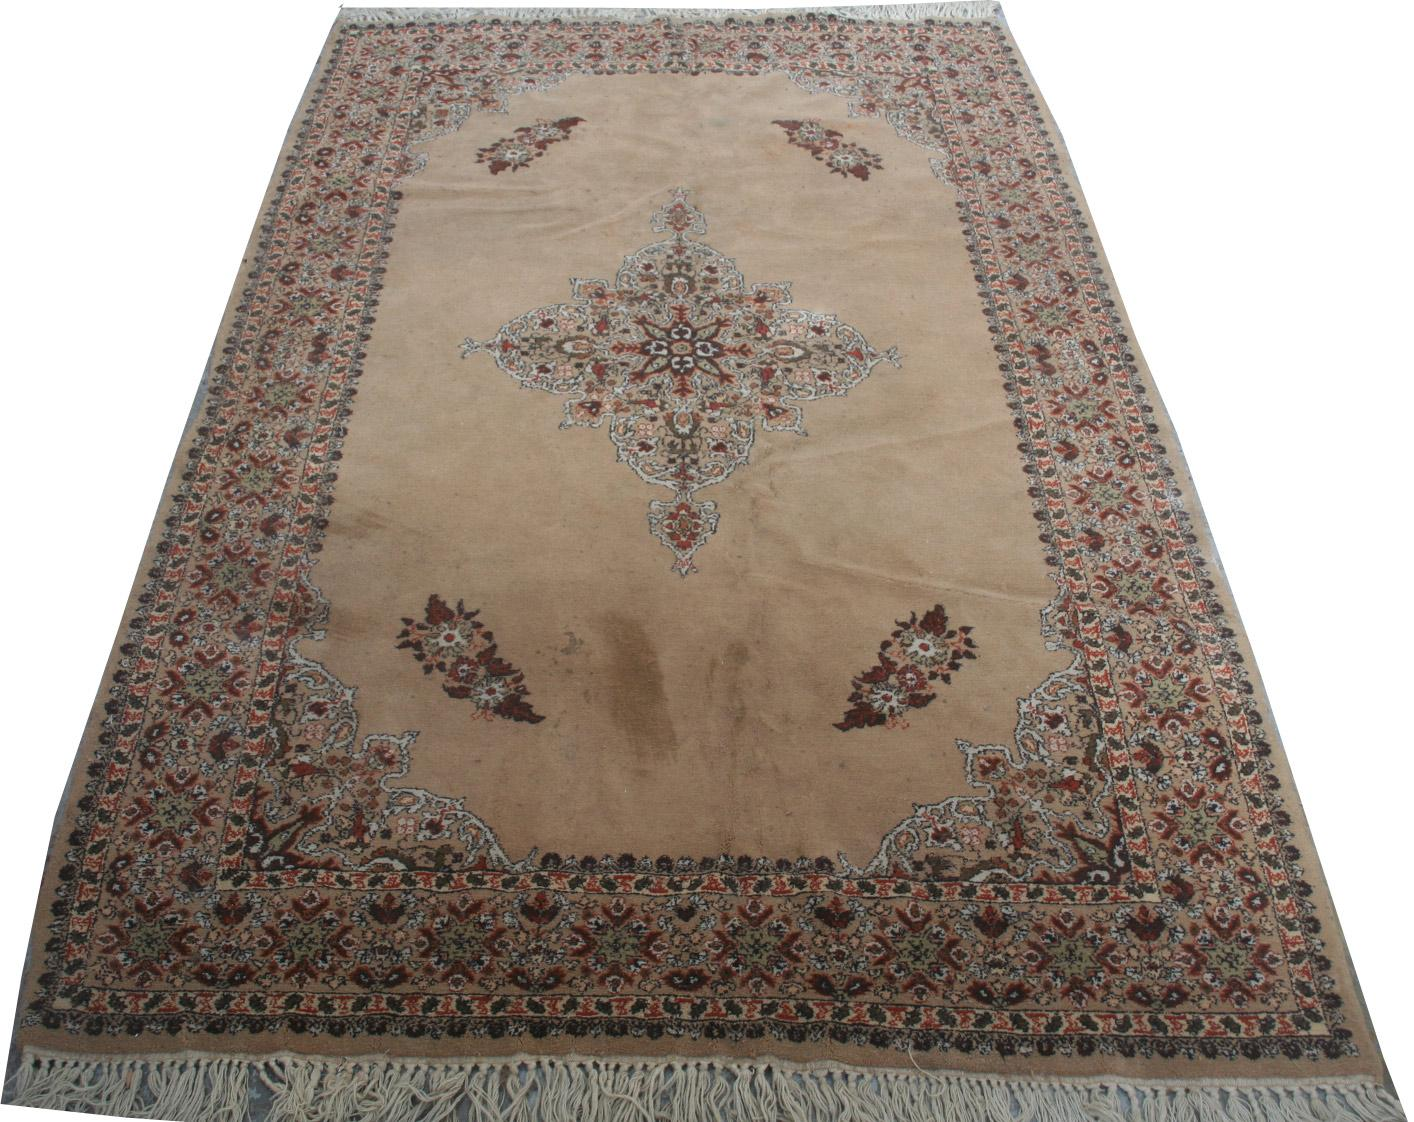 Antique moroccan matto